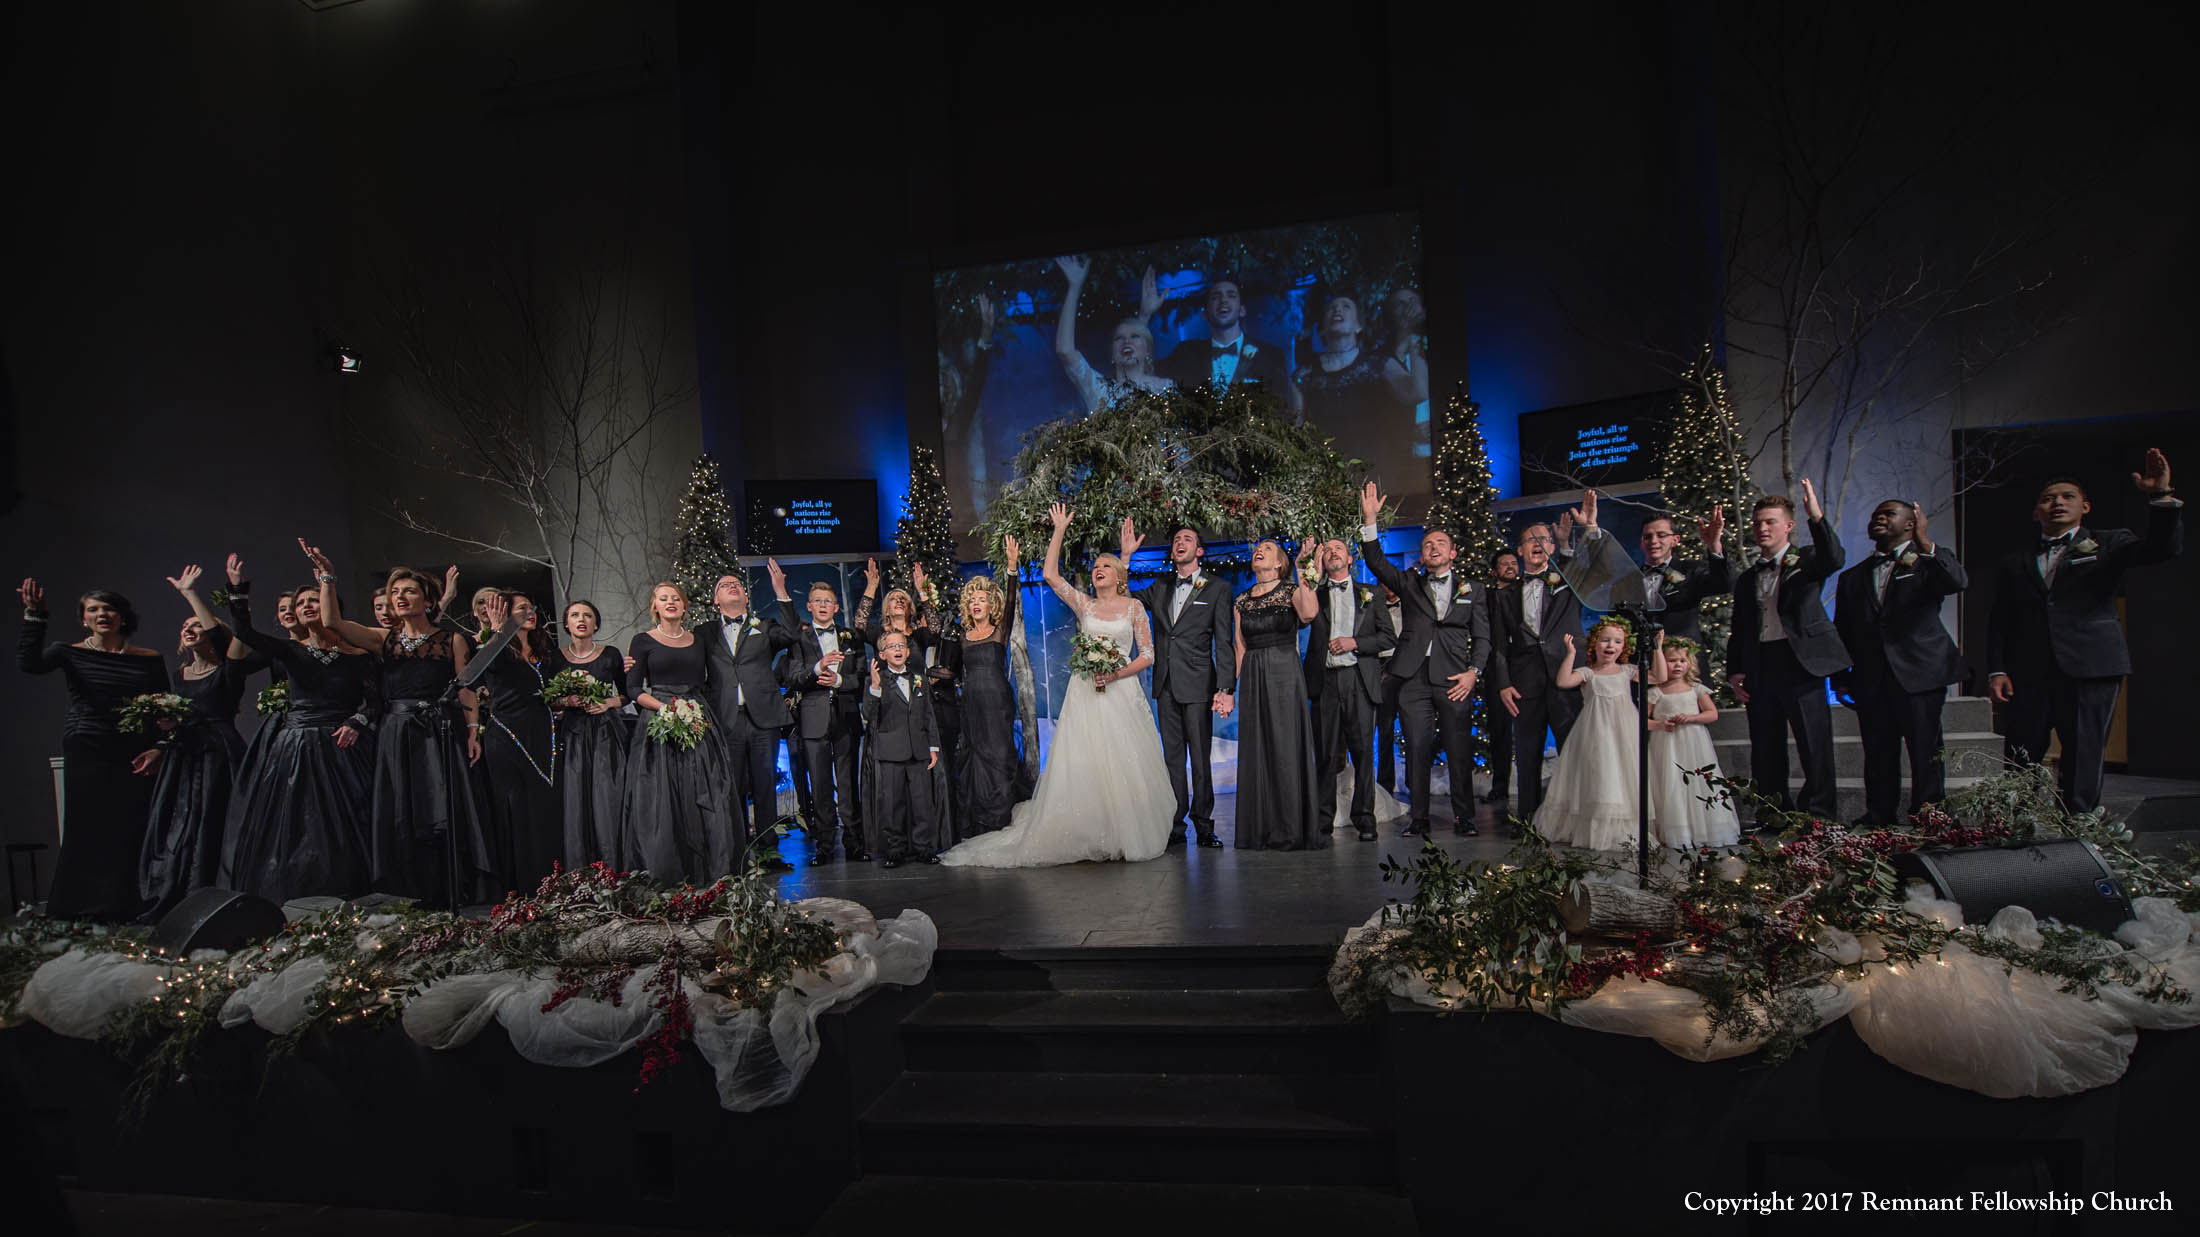 Remnant-Fellowship-Waterson-Rickman-Wedding-Ceremony-Bride-Groom-Wedding-Party-Praising-God